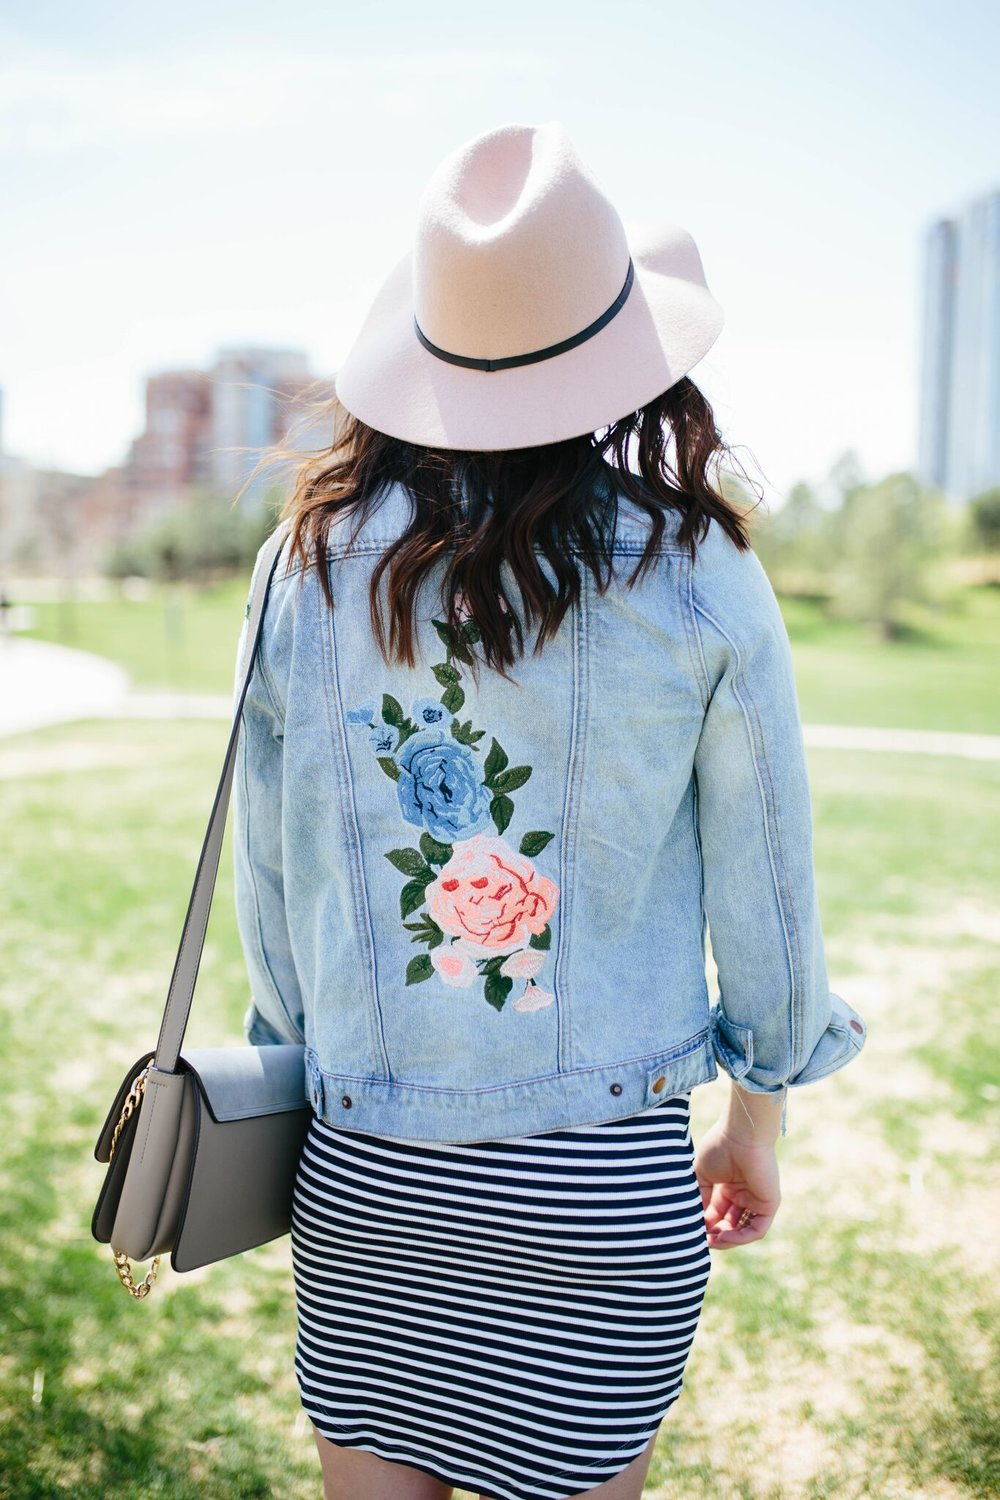 "<img src = "" two-ways-to-wear-it-bodycon-dress.jpg"" alt =""two-ways-to-wear-it-bodycon-dress-casual-rose-gold-adidas-embroidered-denim-jacket"""